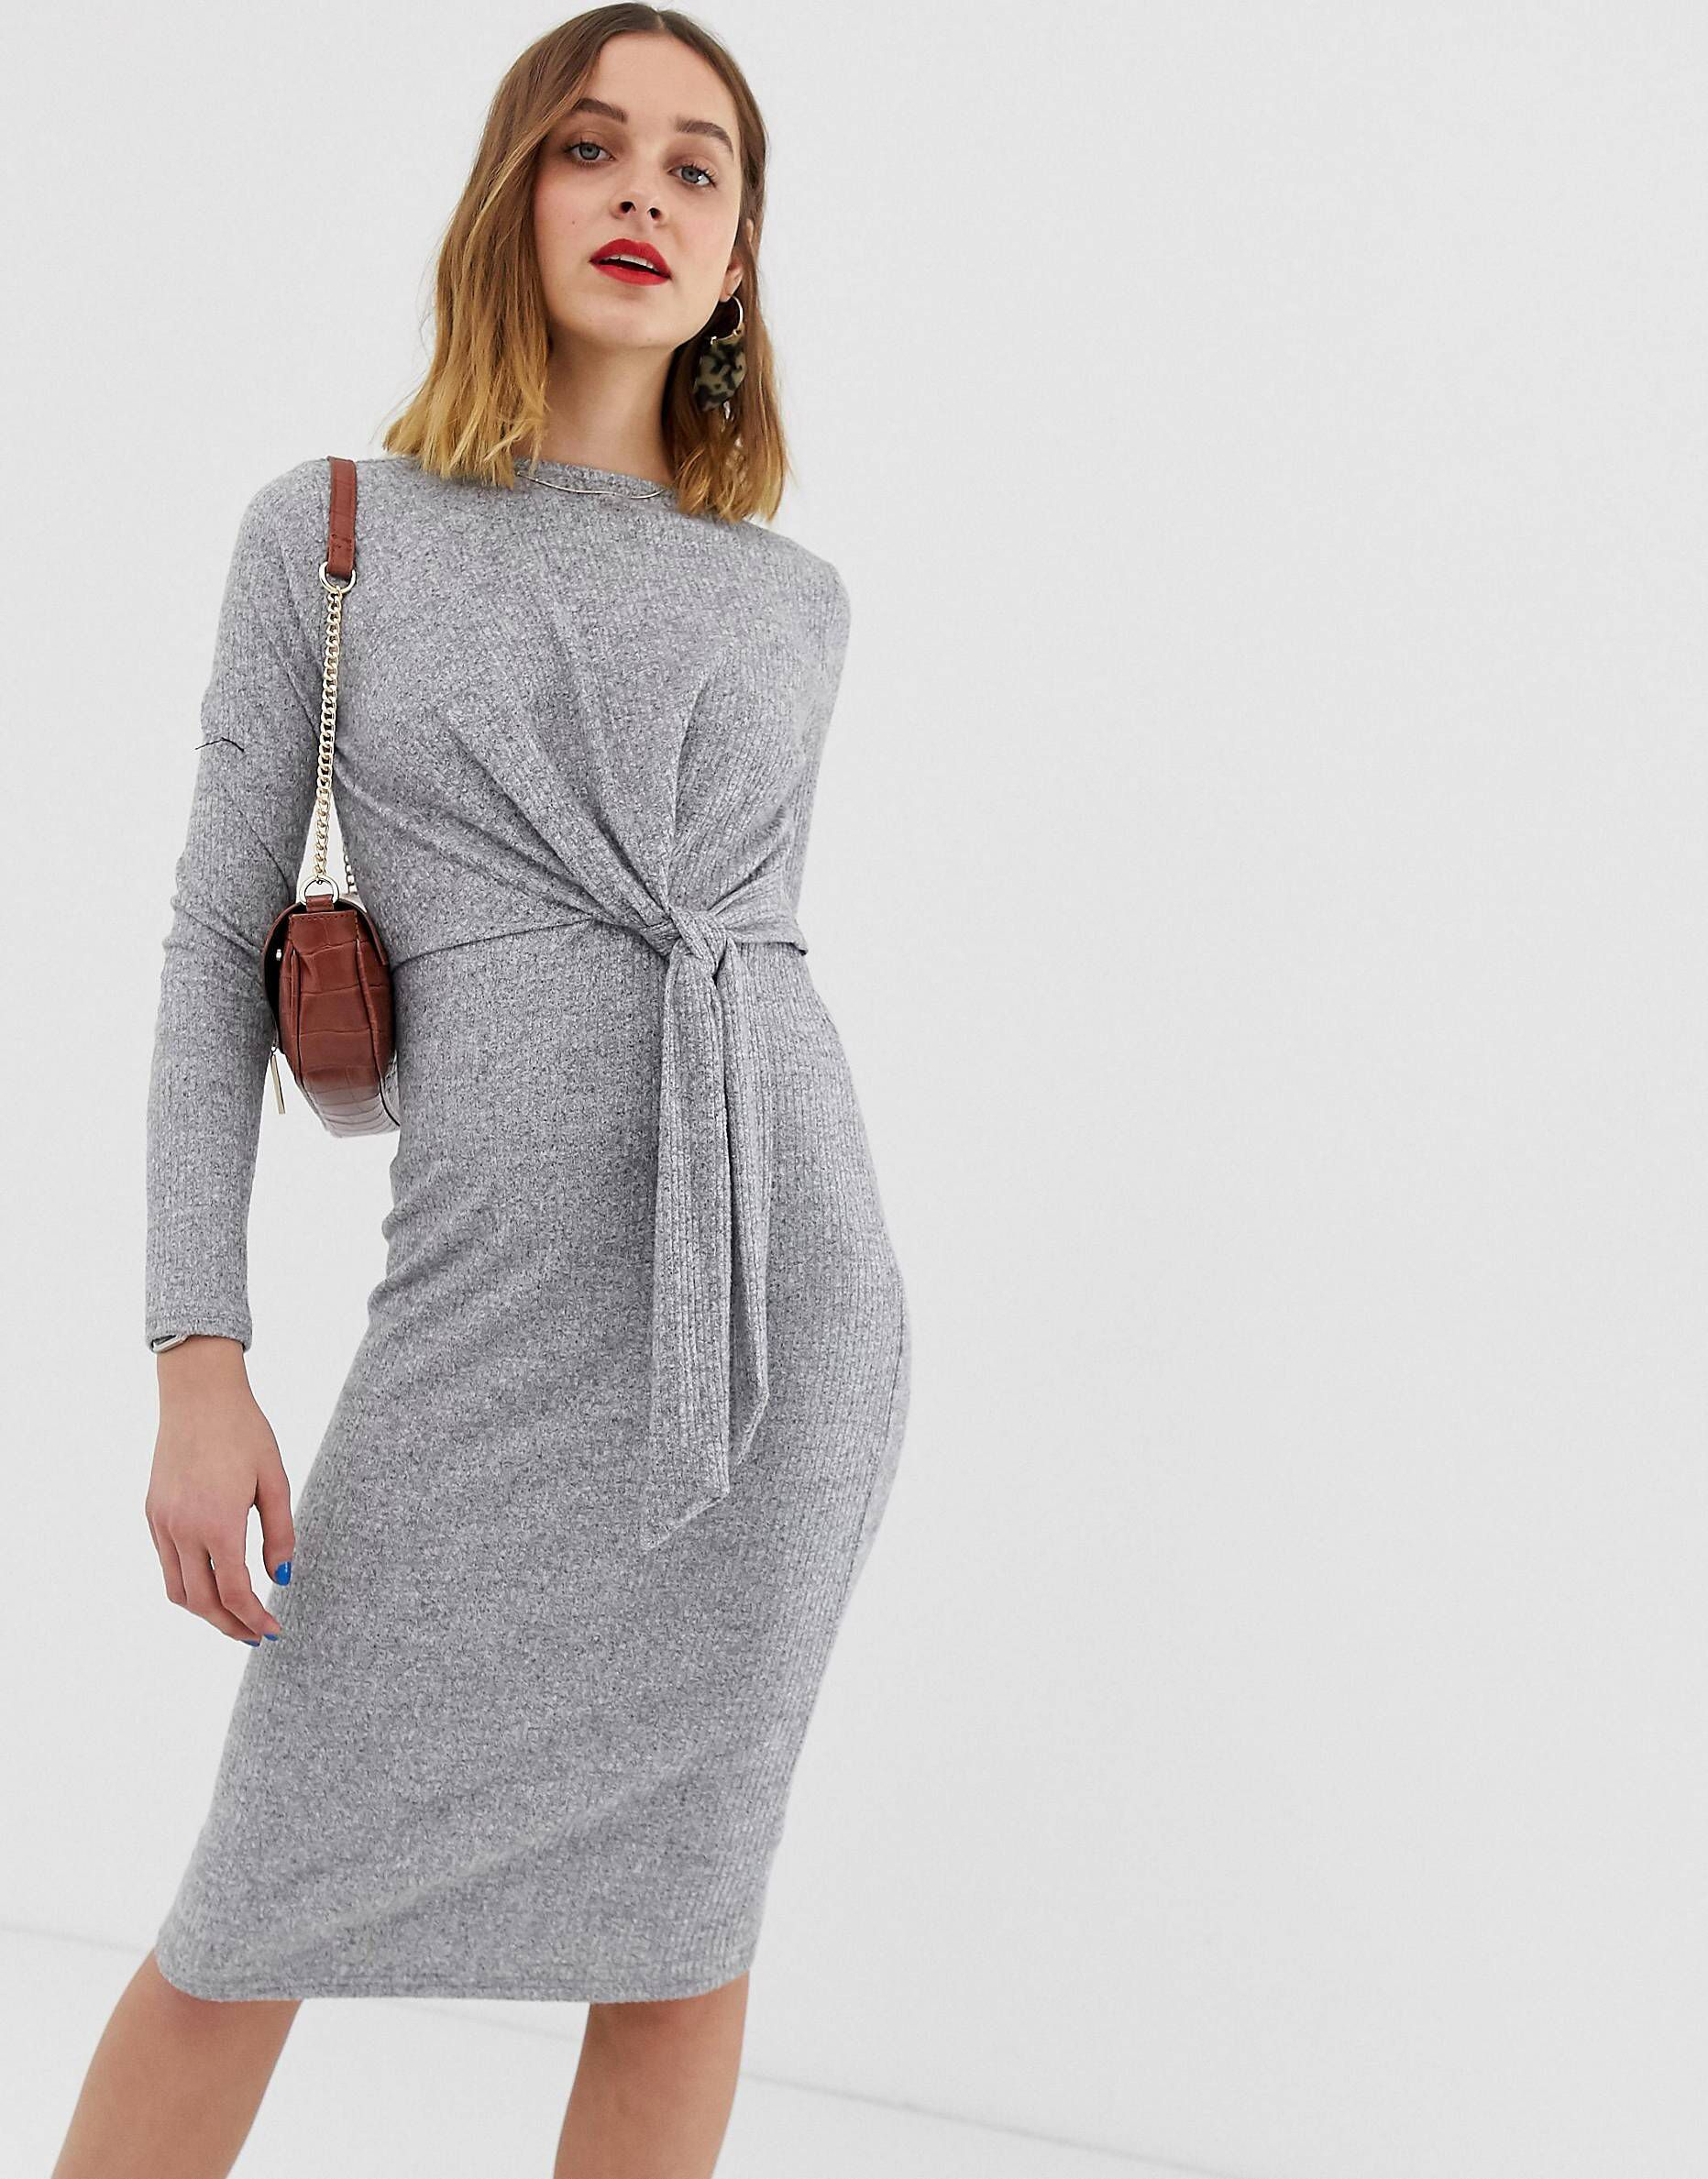 1b0f93b7a97 River Island dress with knot front in gray in 2019